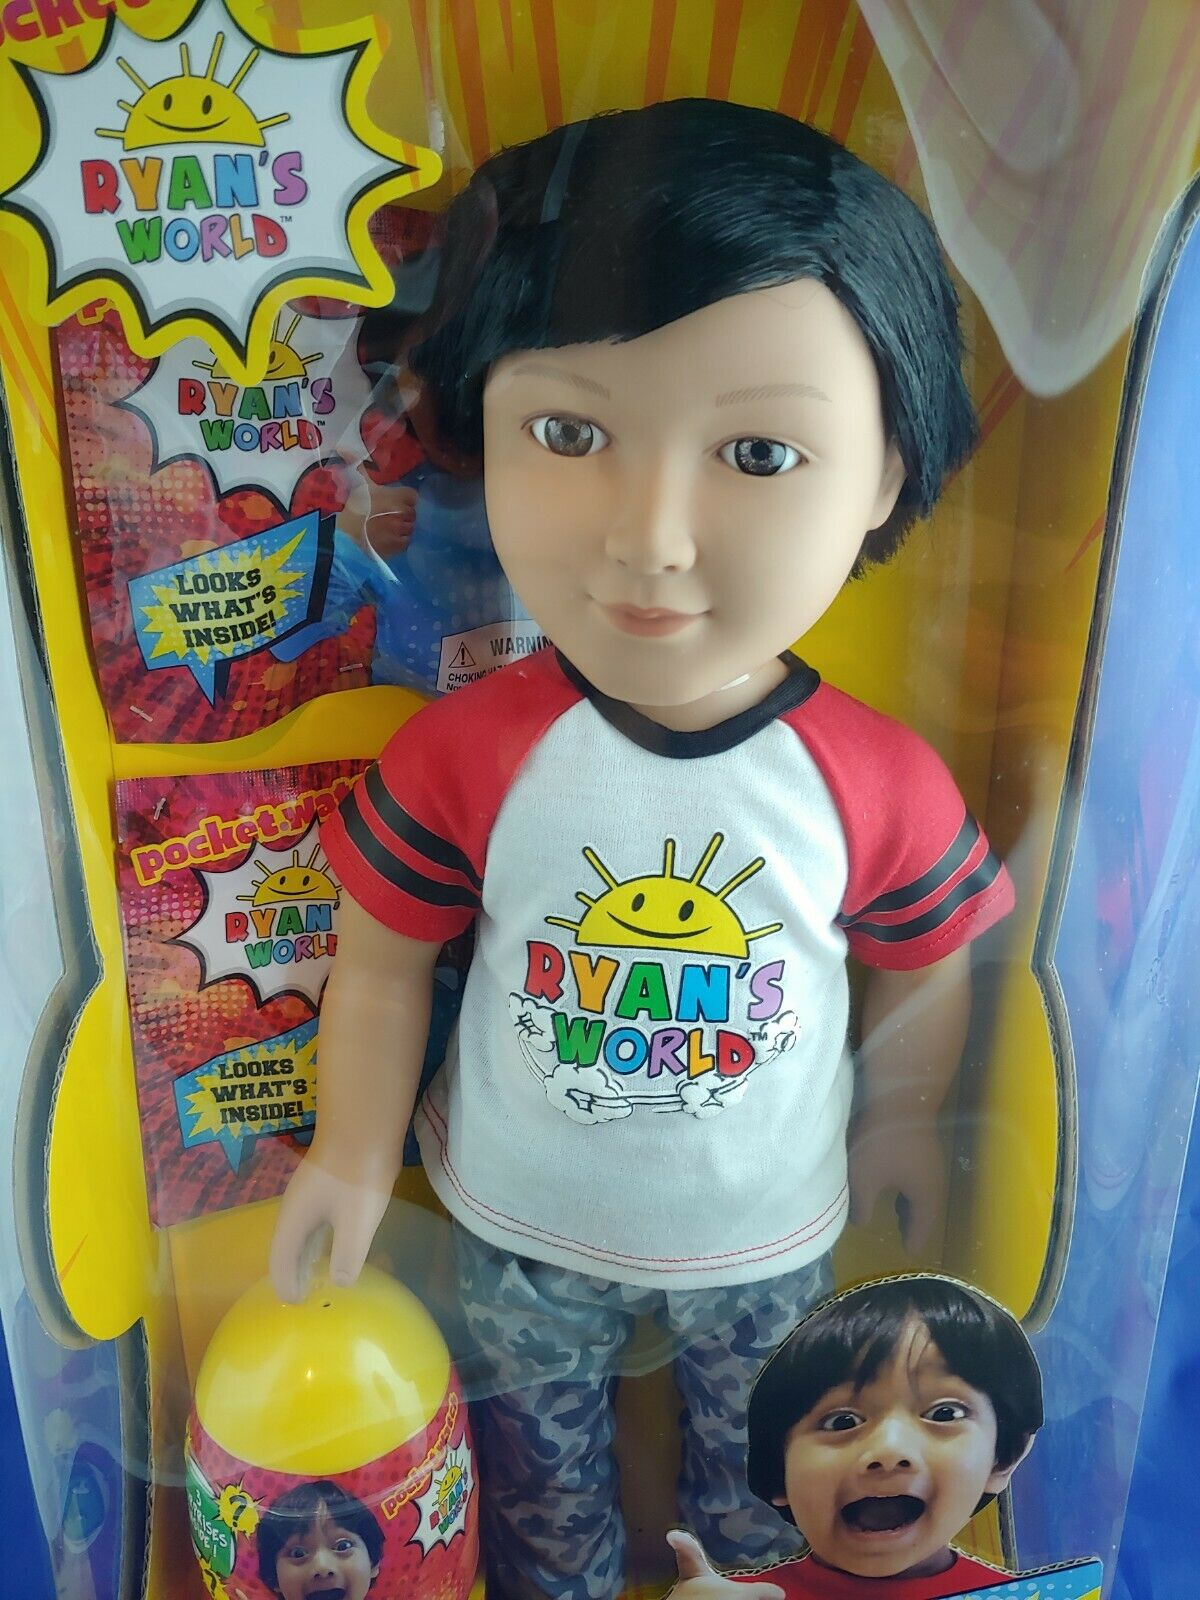 NEW Ryan's World My Life doll - brand new in sealed box + Free Shipping